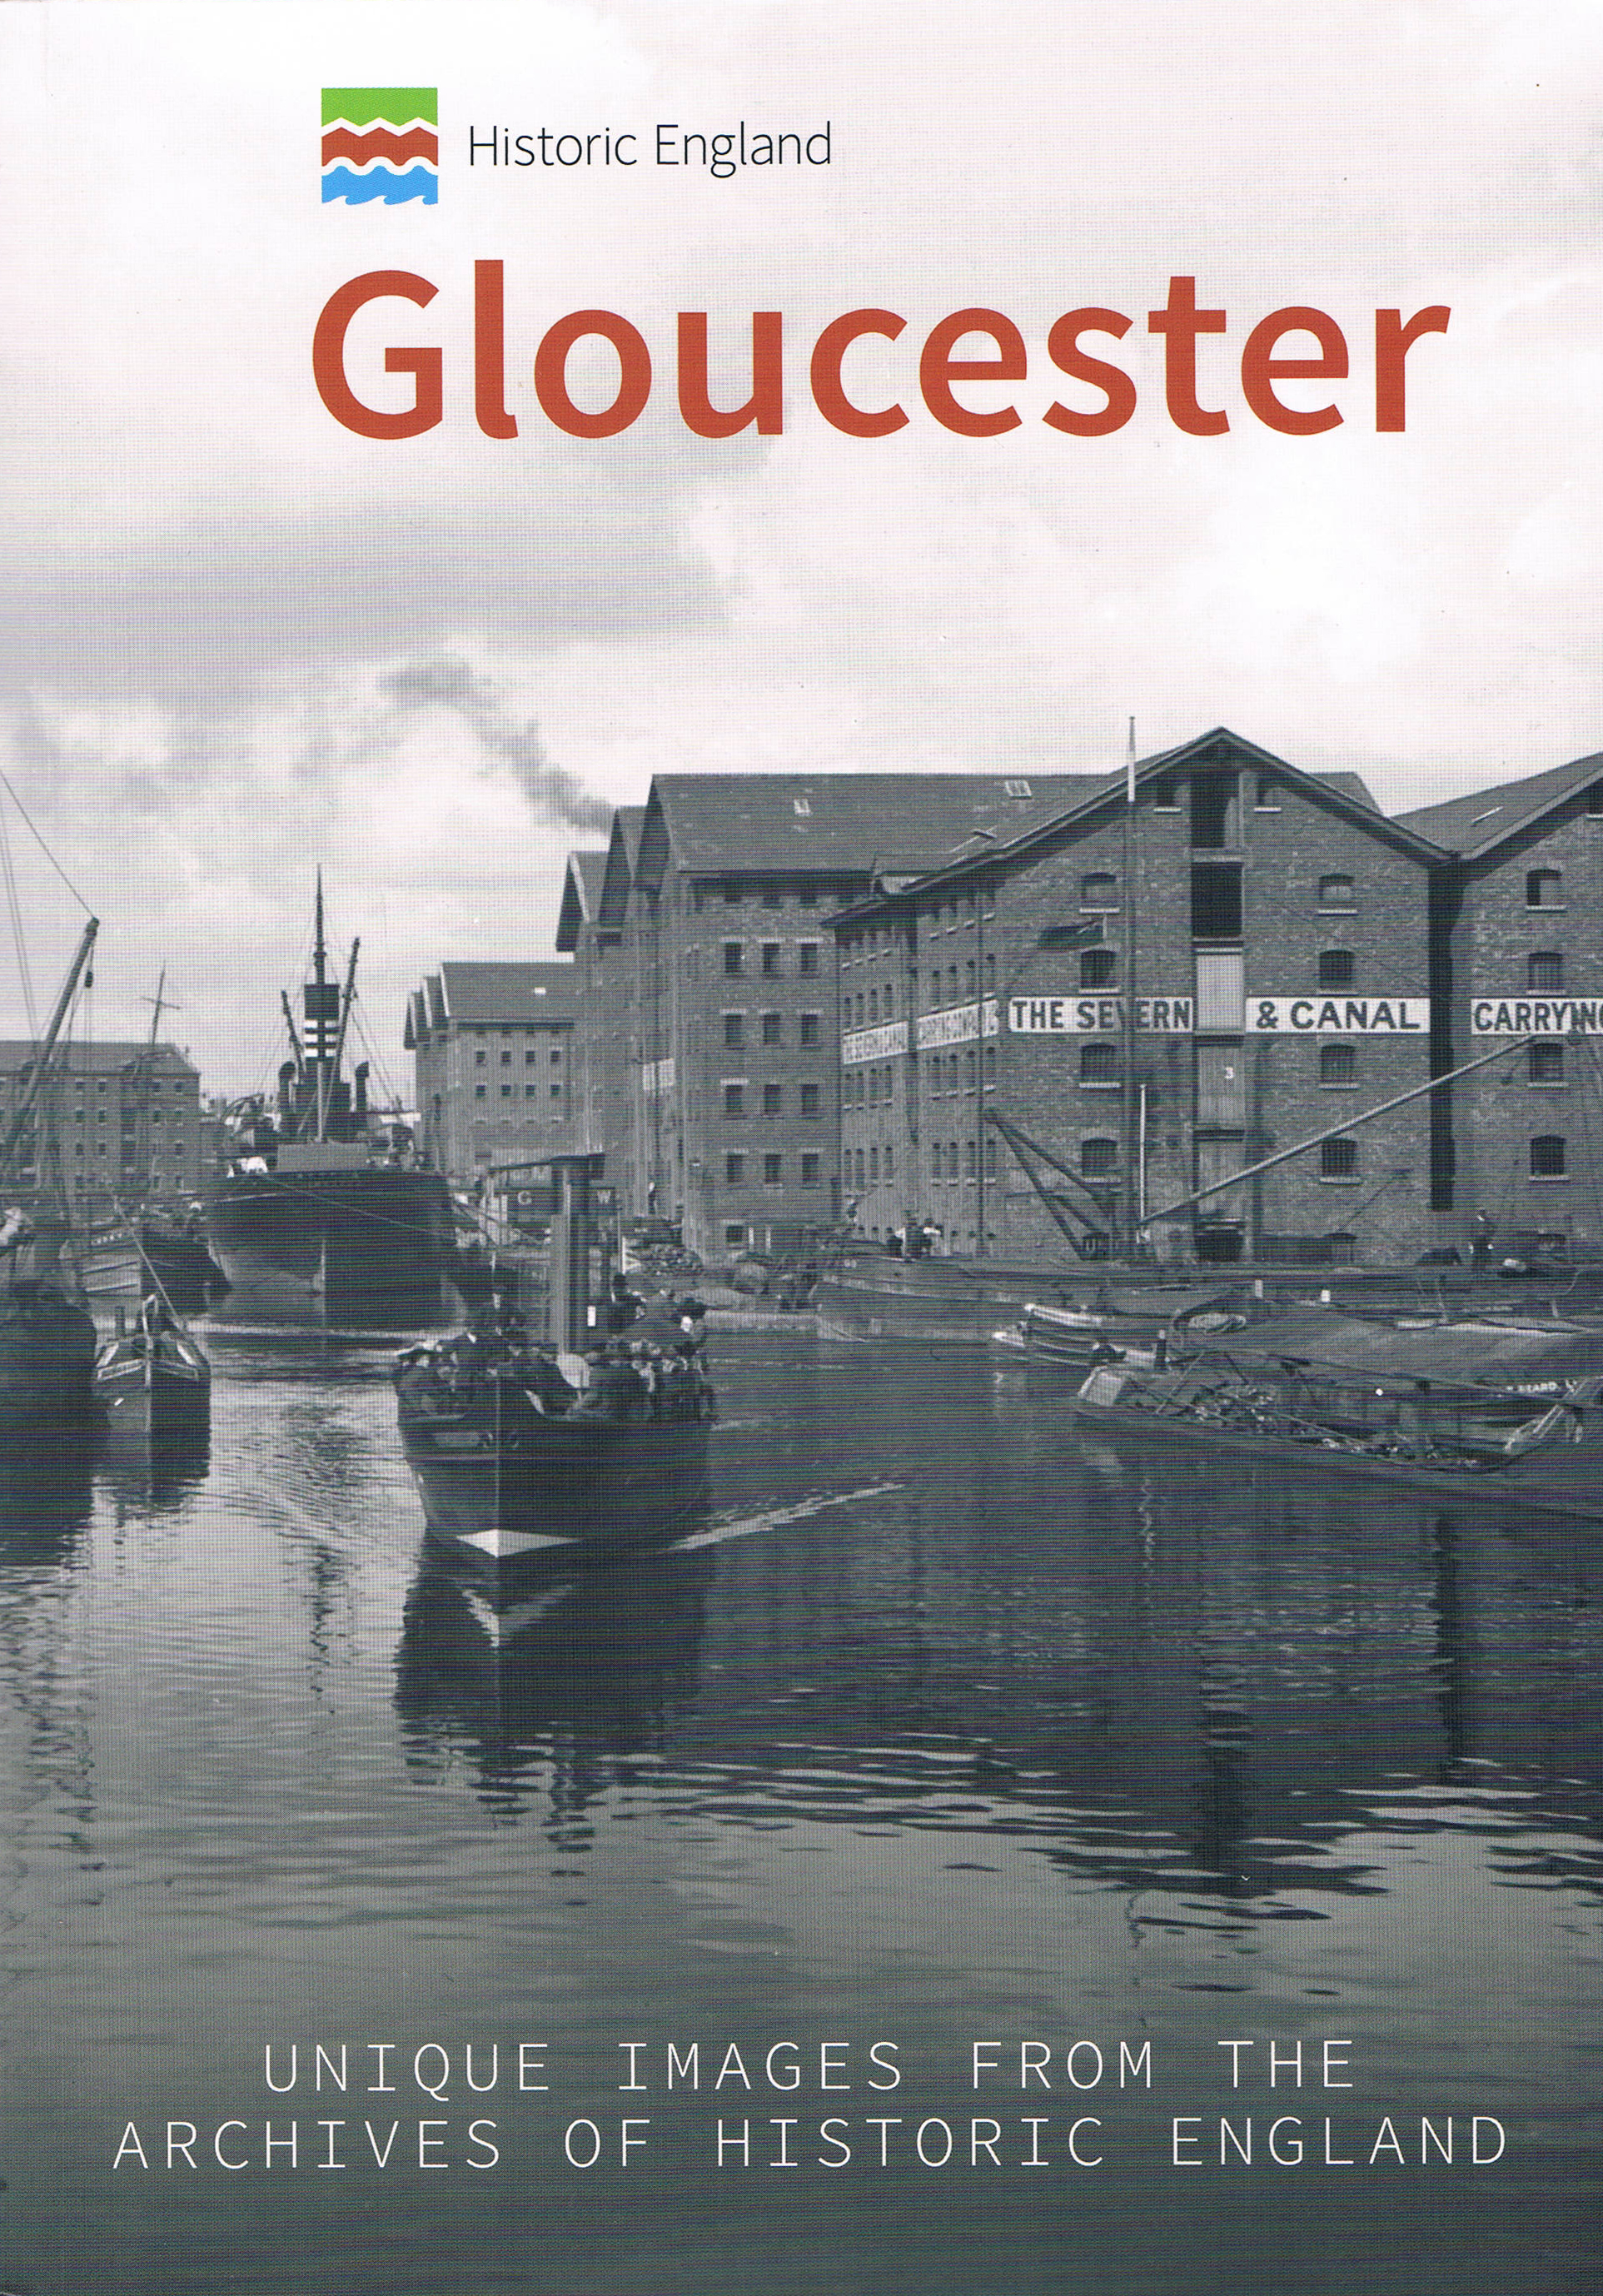 HE Gloucester Book cover.jpg